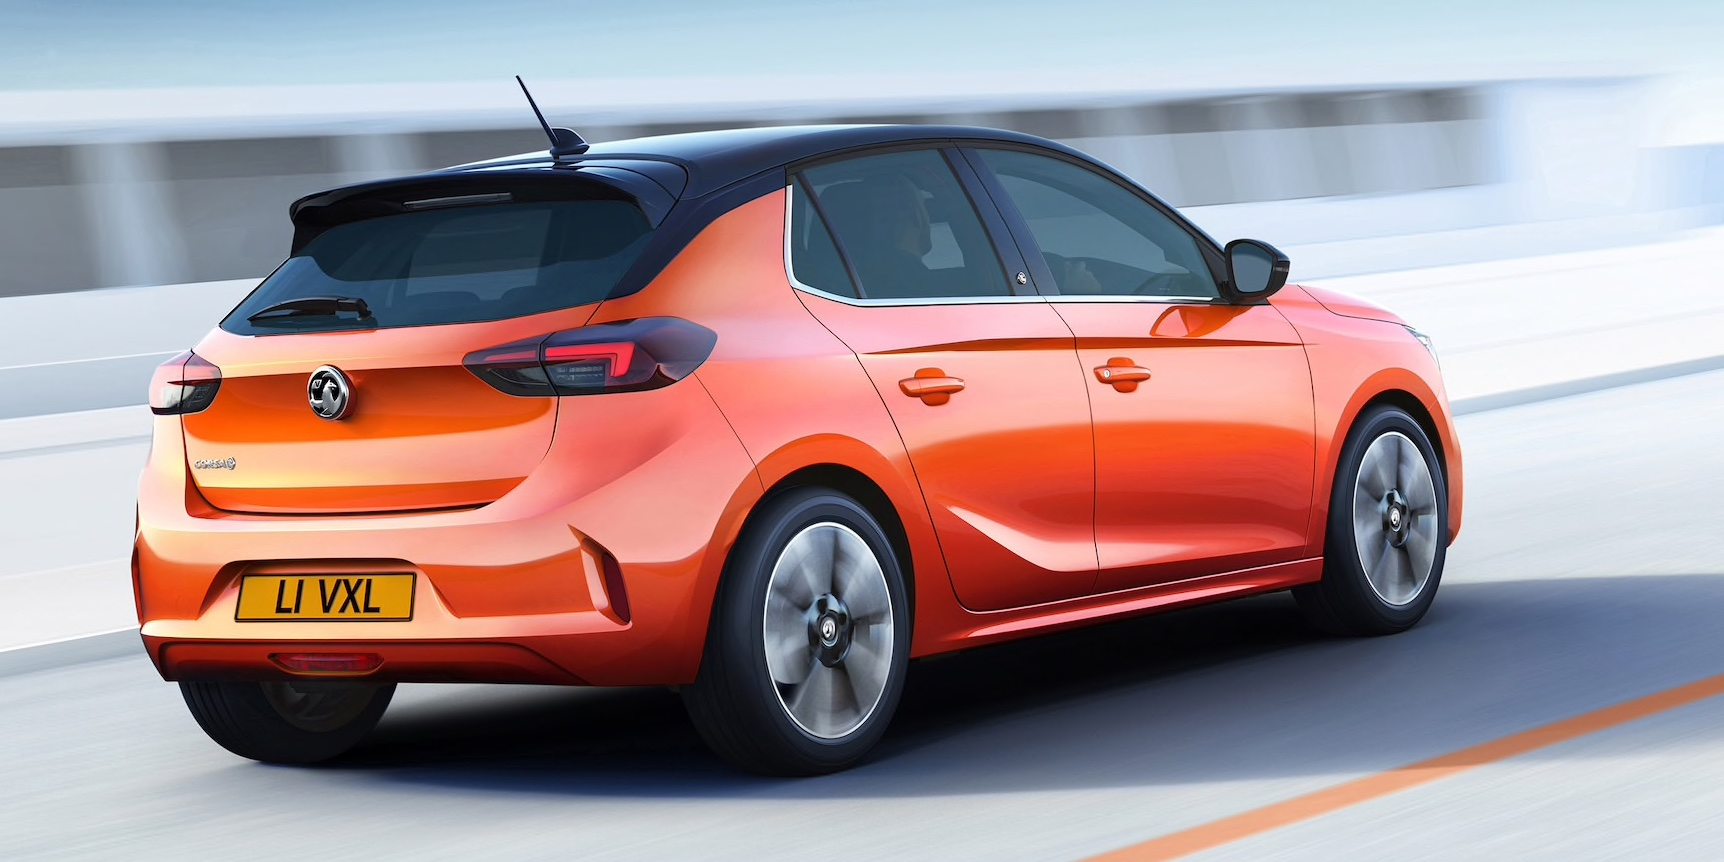 Opel unveils all-electric Corsa-e with 205-mile range